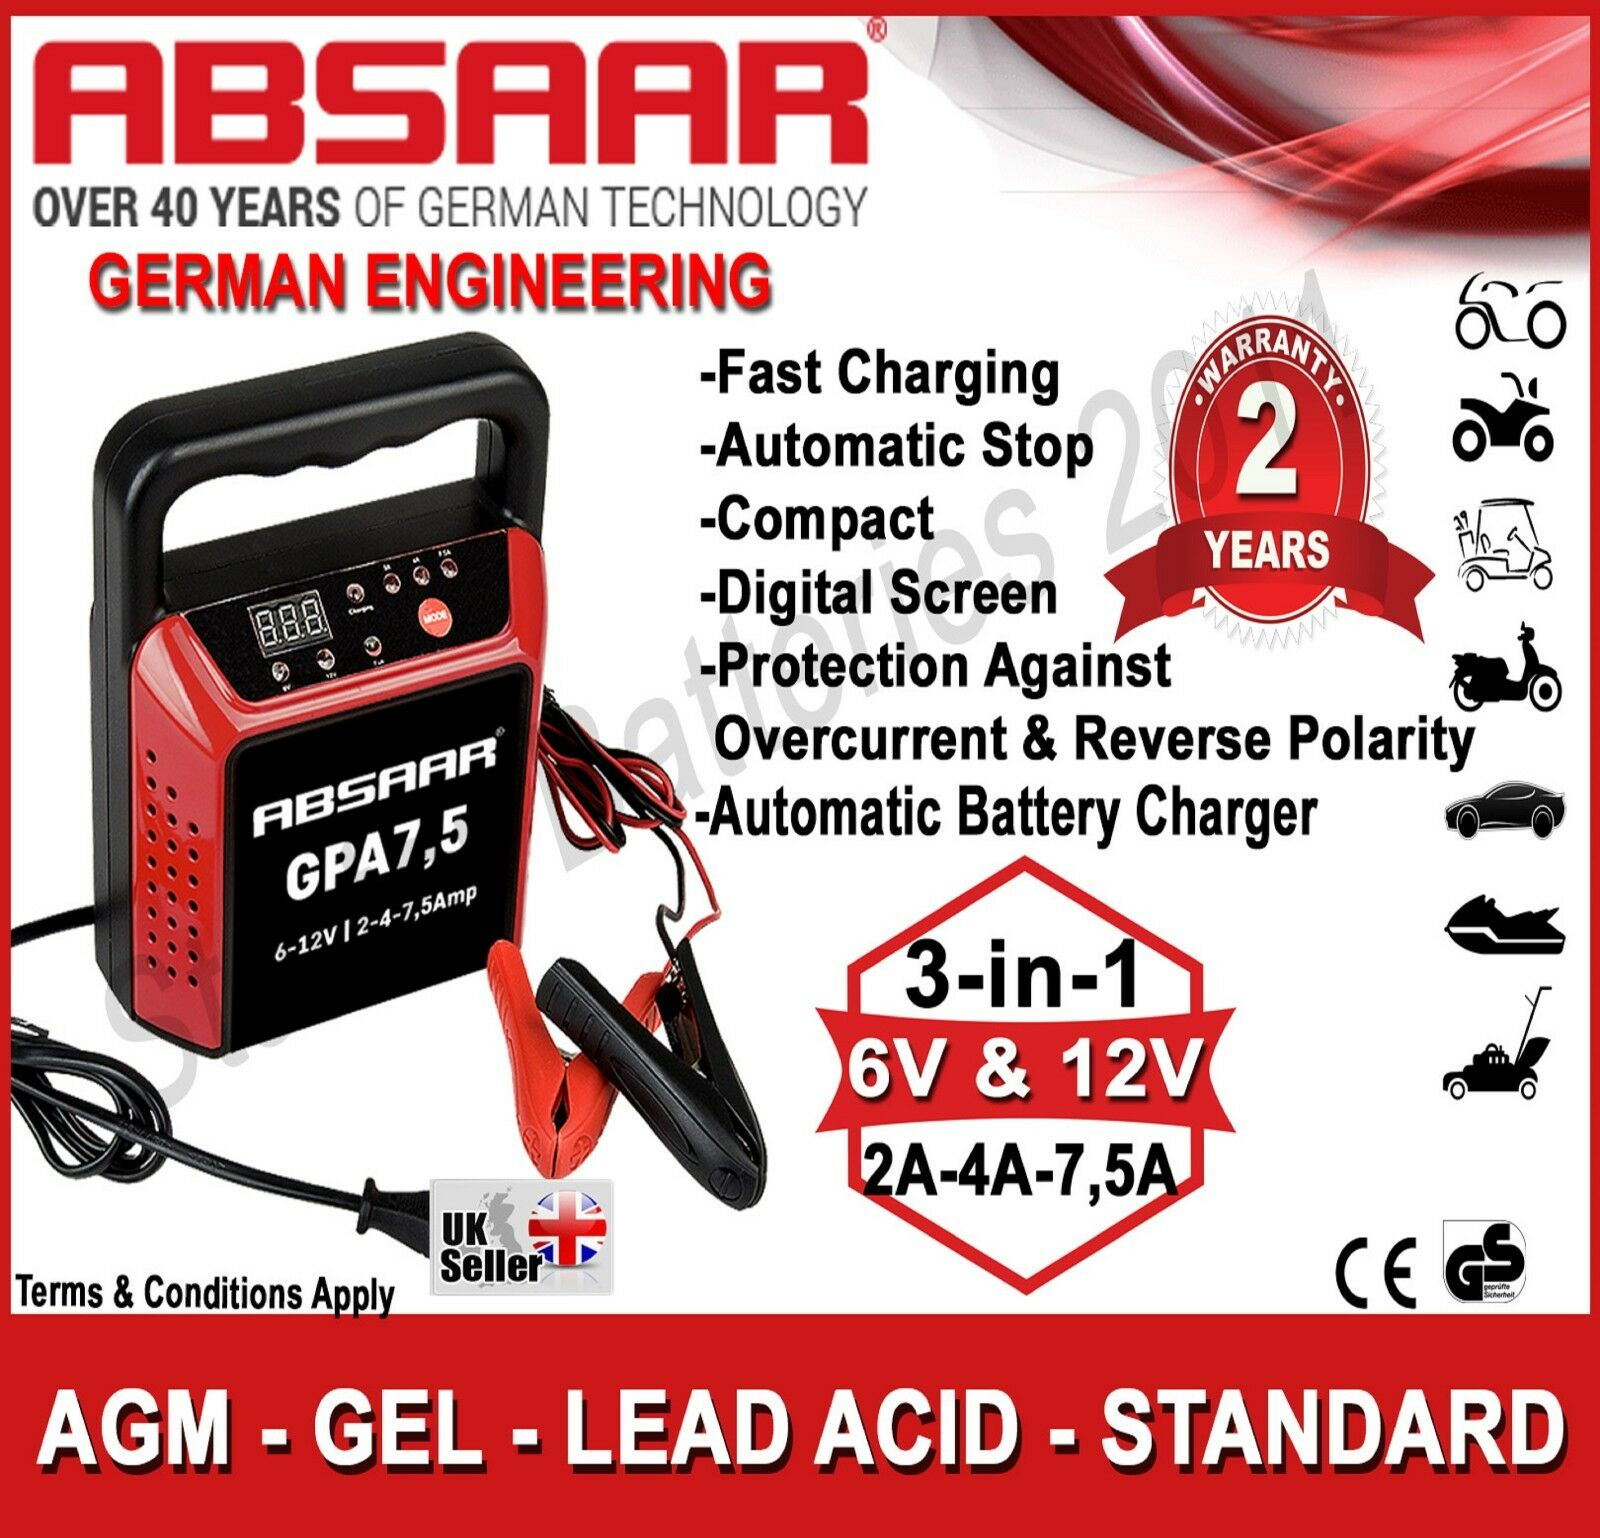 Absaar Gpa75 6v 12v 2a 4a 75a Automatic Battery Charger Lead Acid Note Or You Can Use This 6v12v With 1 Of 1free Shipping See More